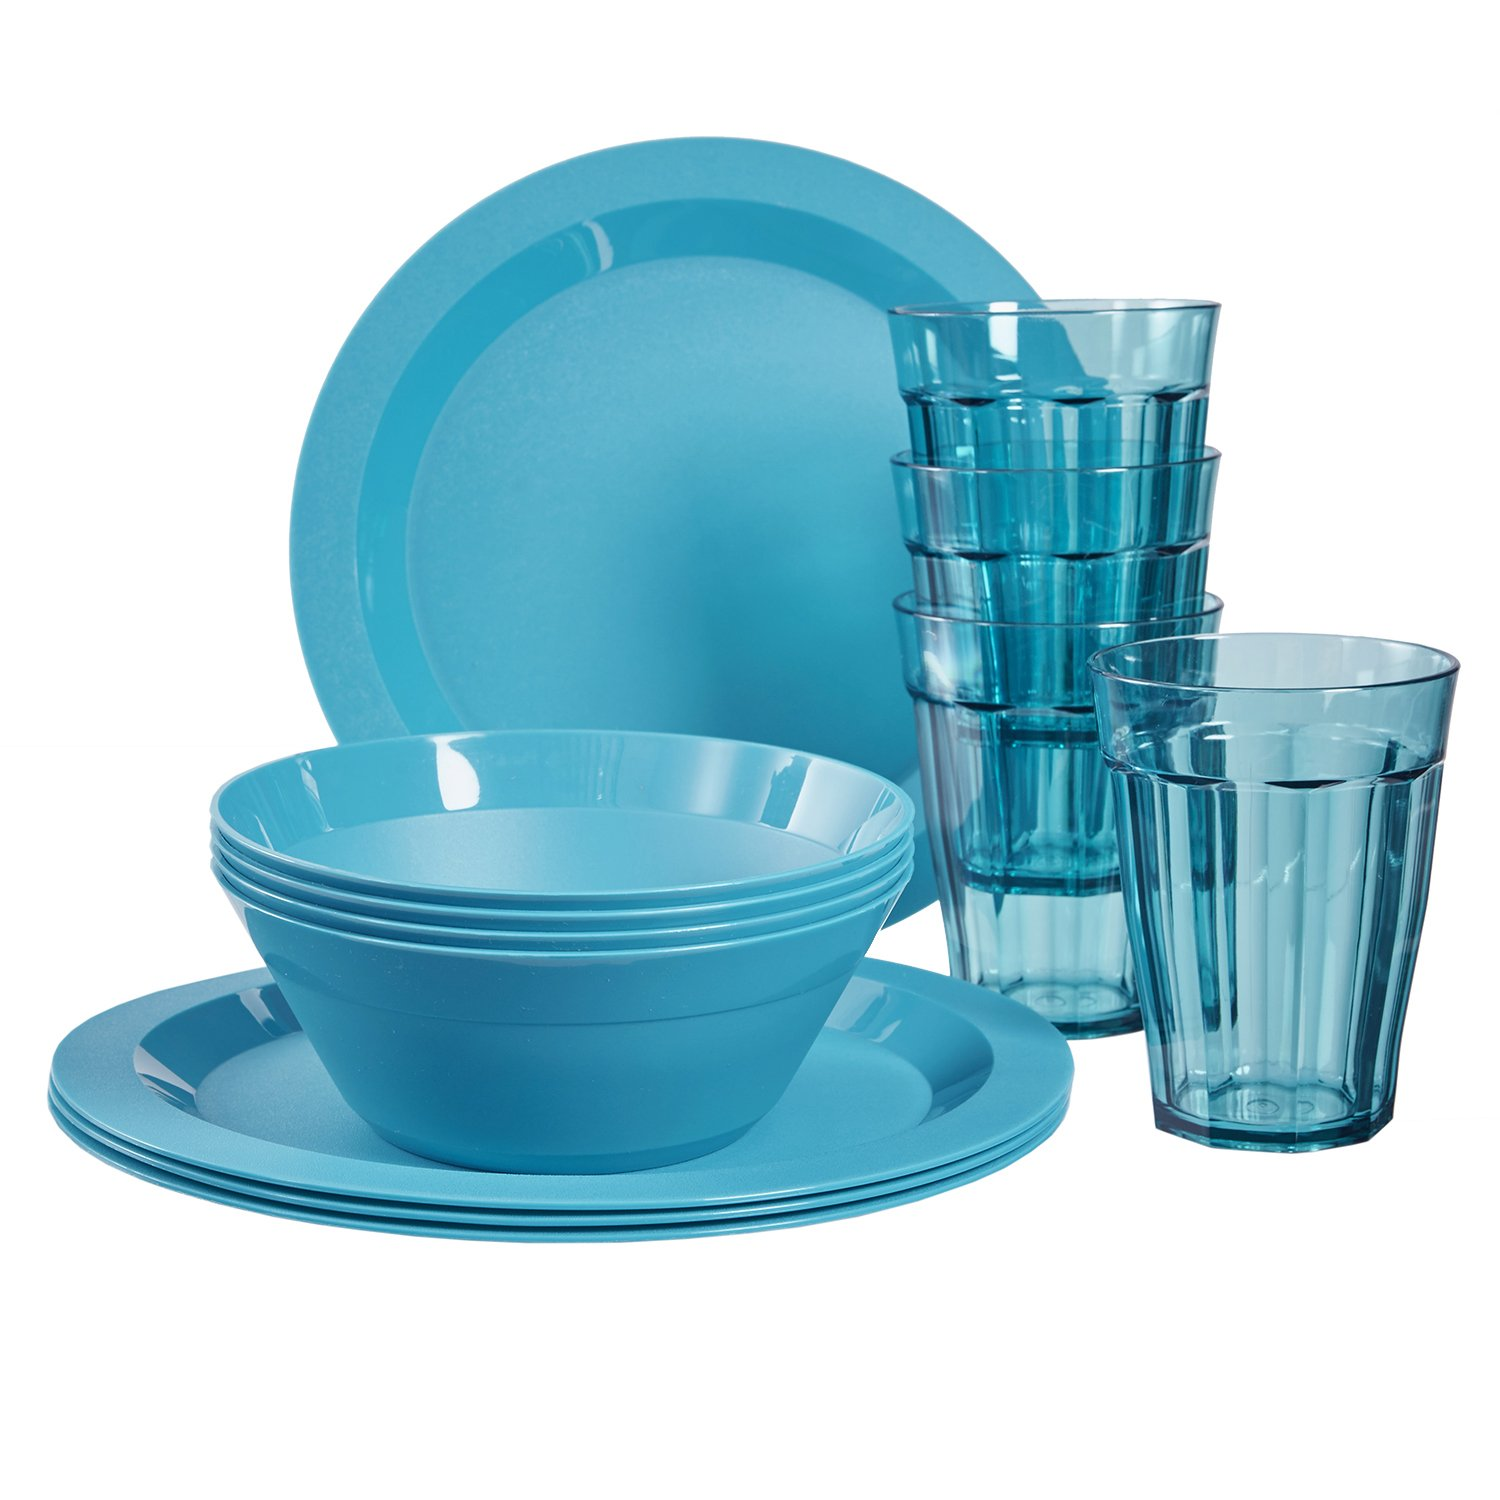 Cambridge Plastic Plate, Bowl and Tumbler Dinnerware | 12-piece set Teal by US Acrylic (Image #1)